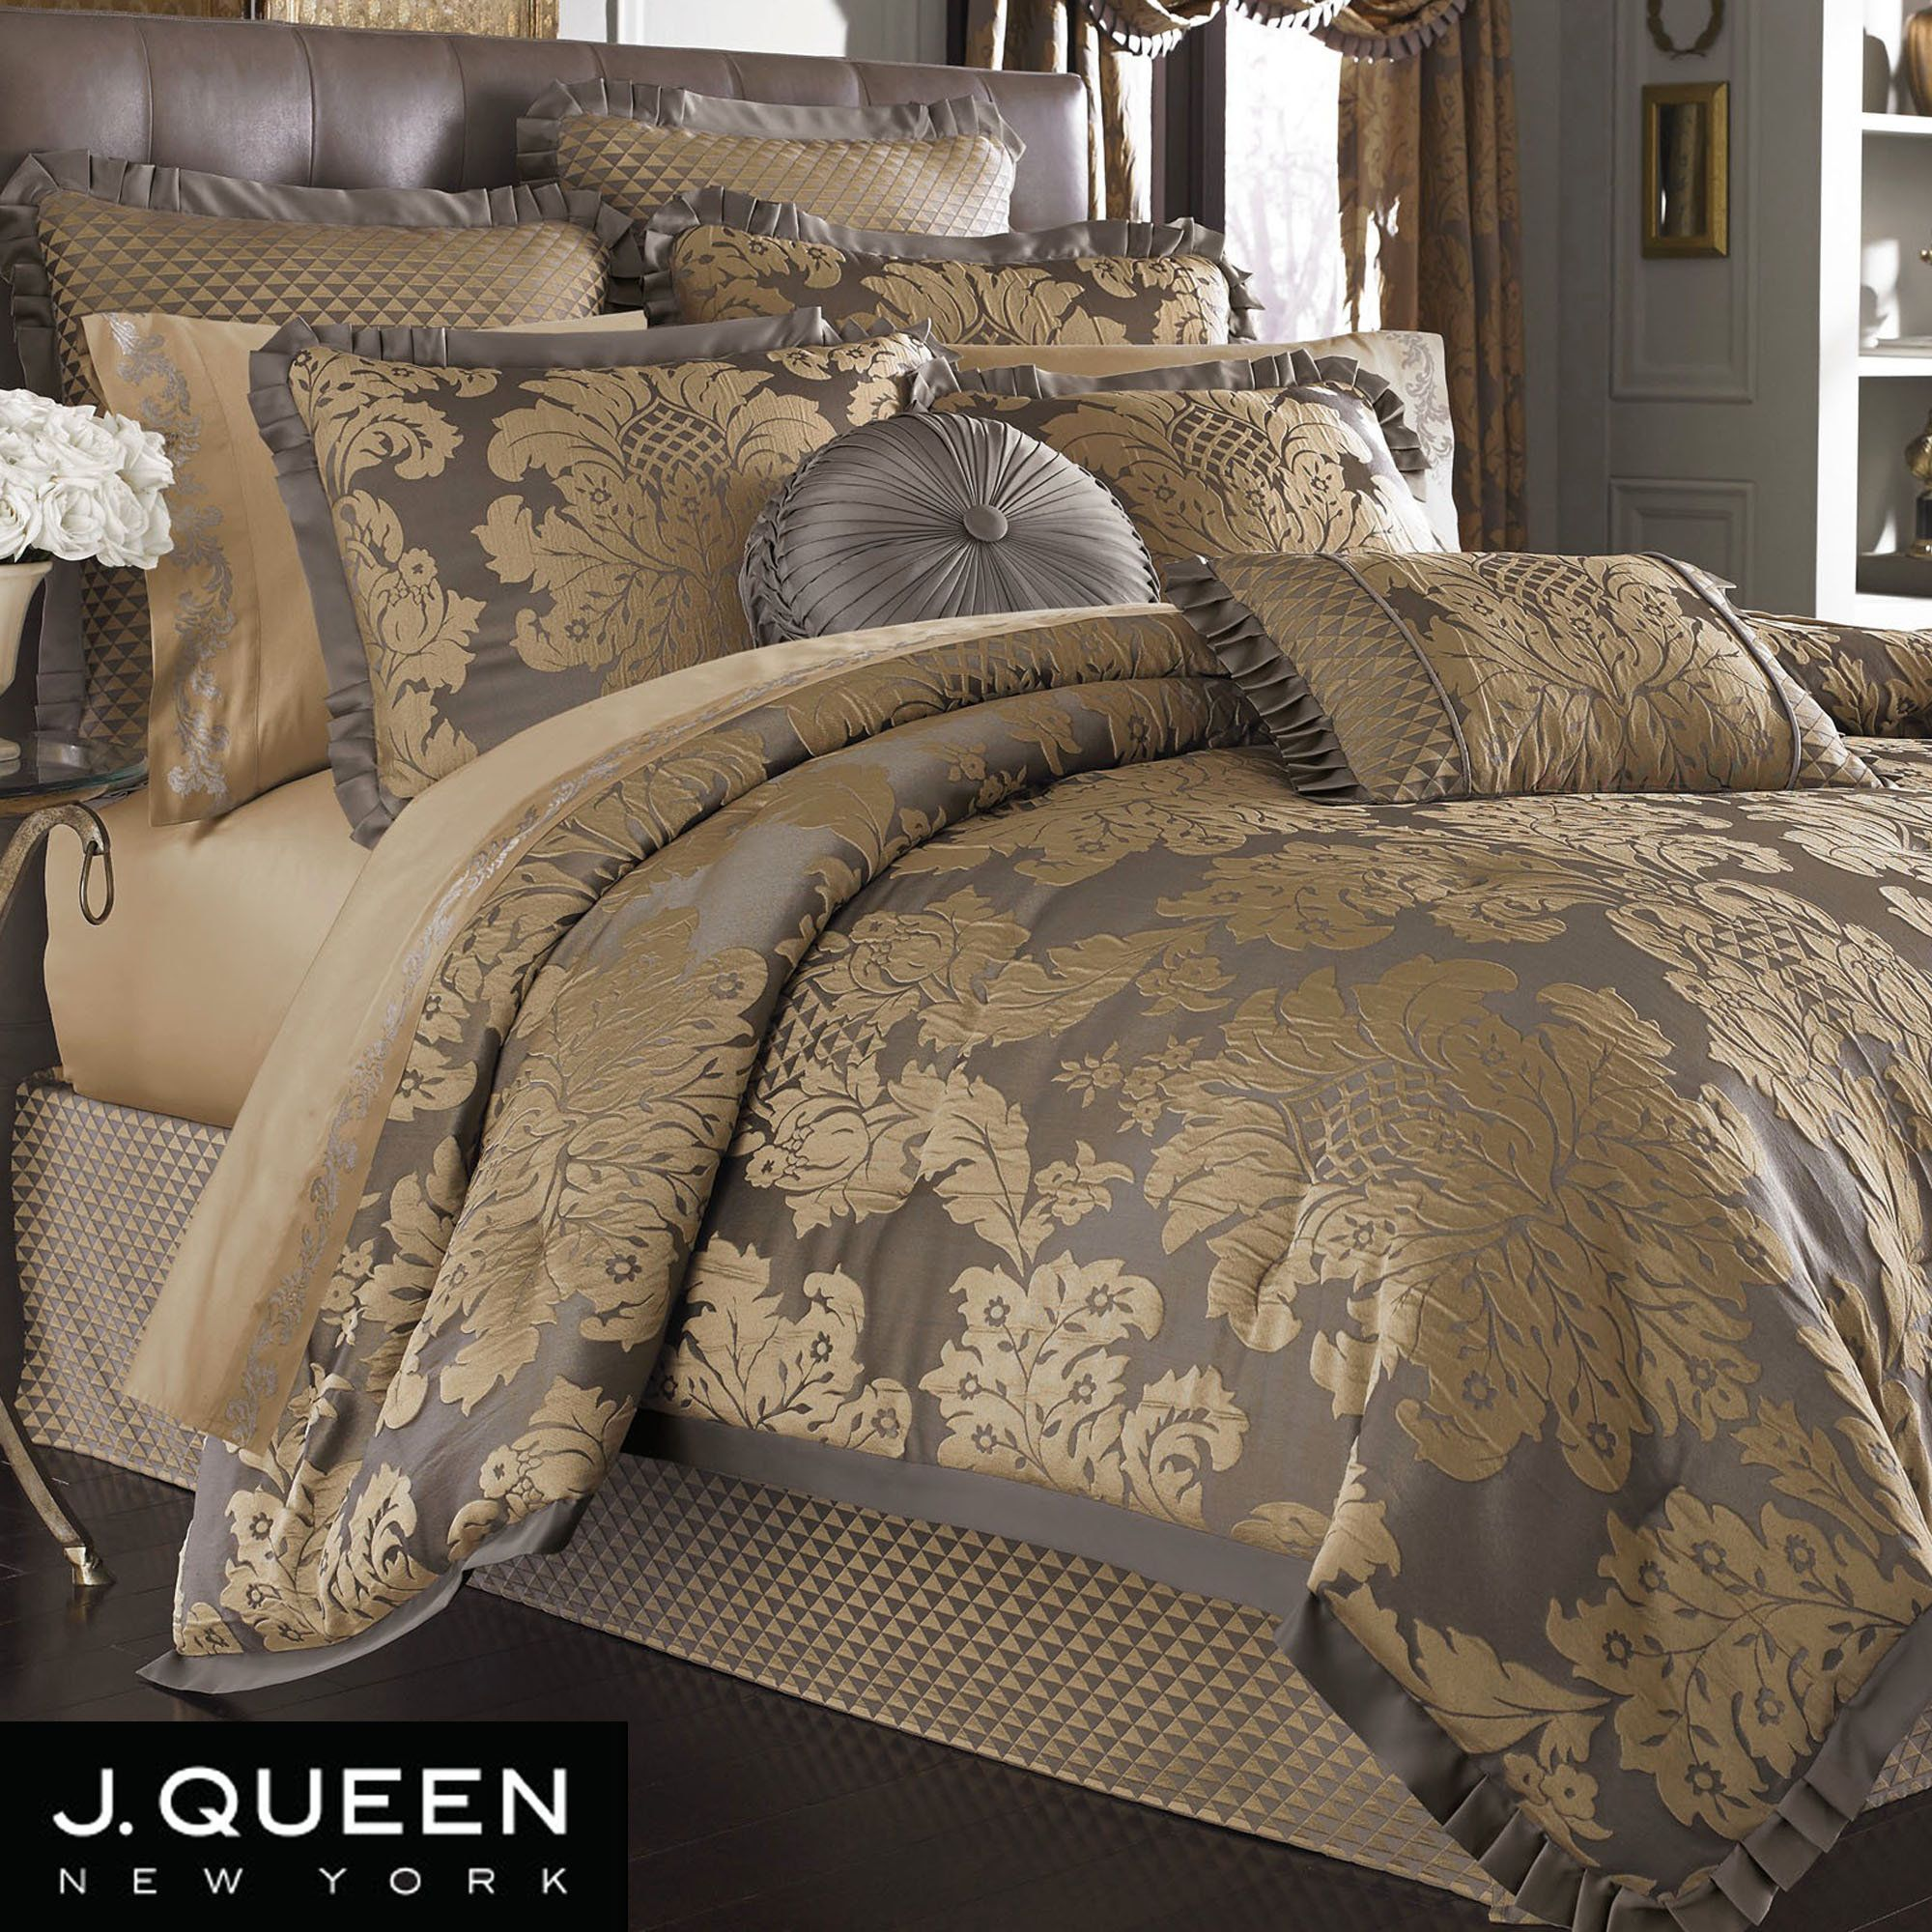 waterford queen caprice linens bath bed comforter reverse shop set canada outlet